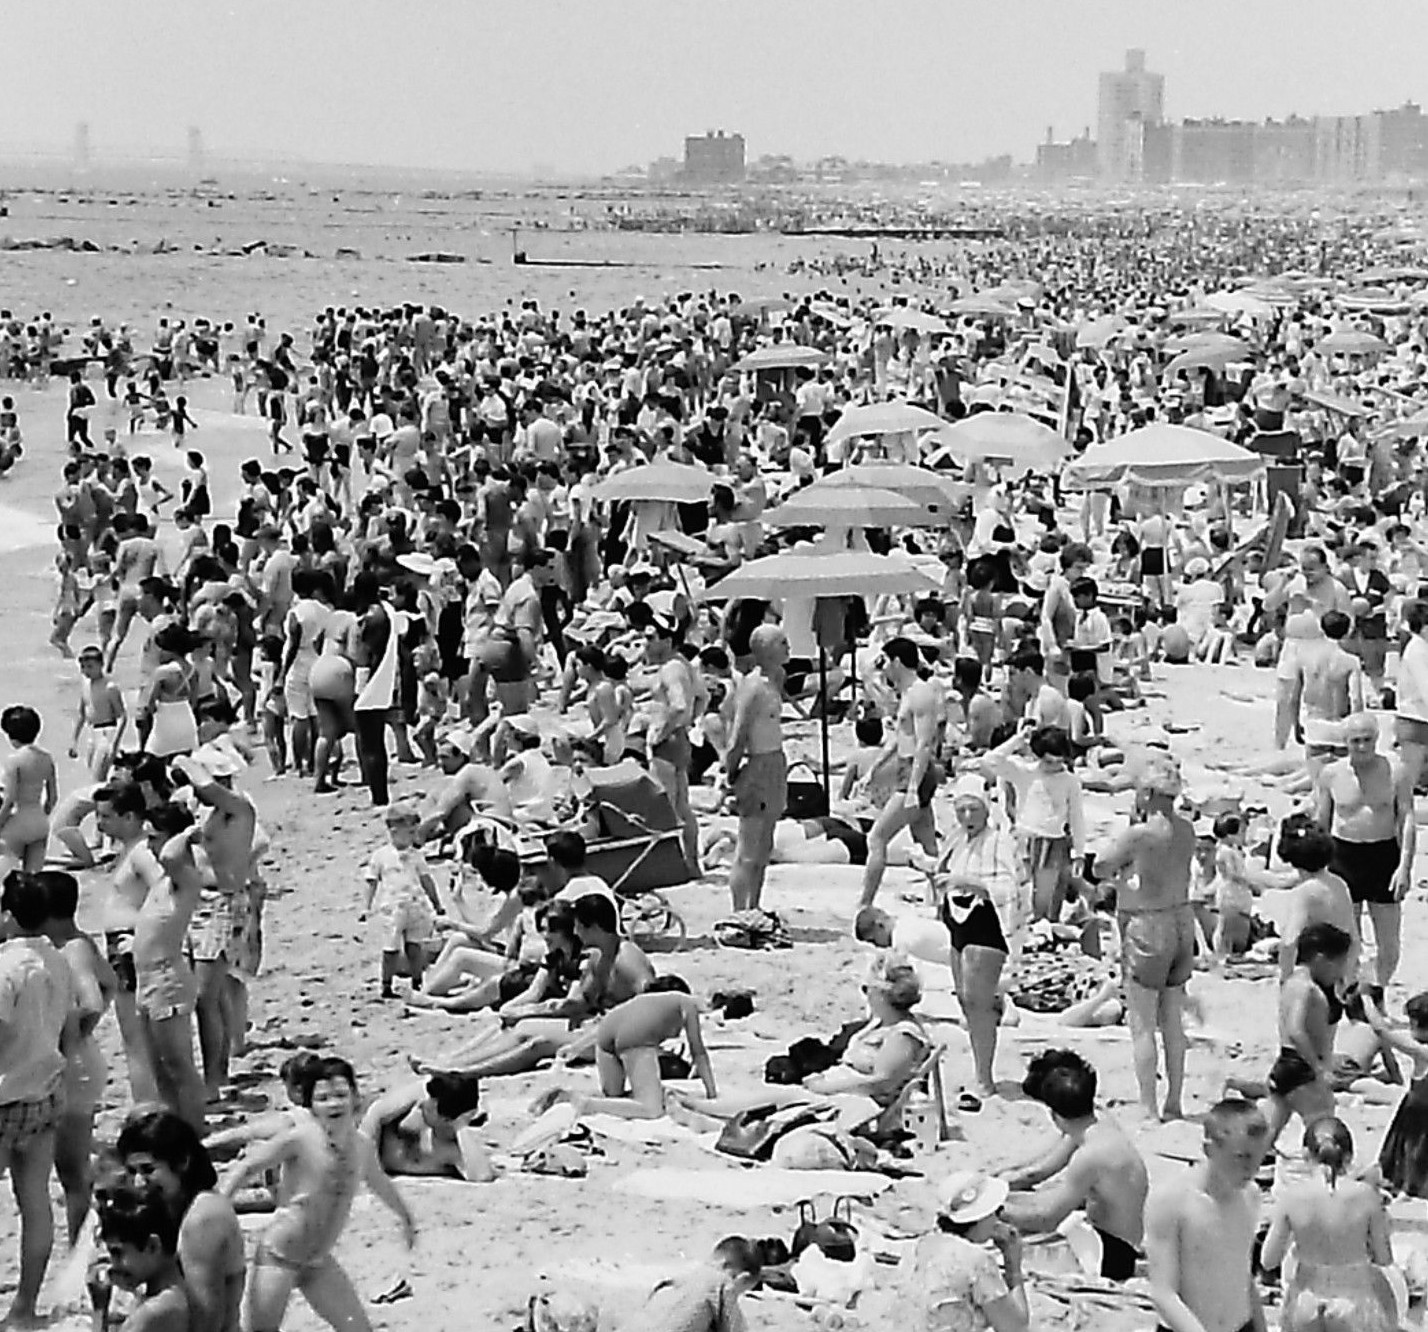 Coney Island Beach Crowds From July 4's Of The Past